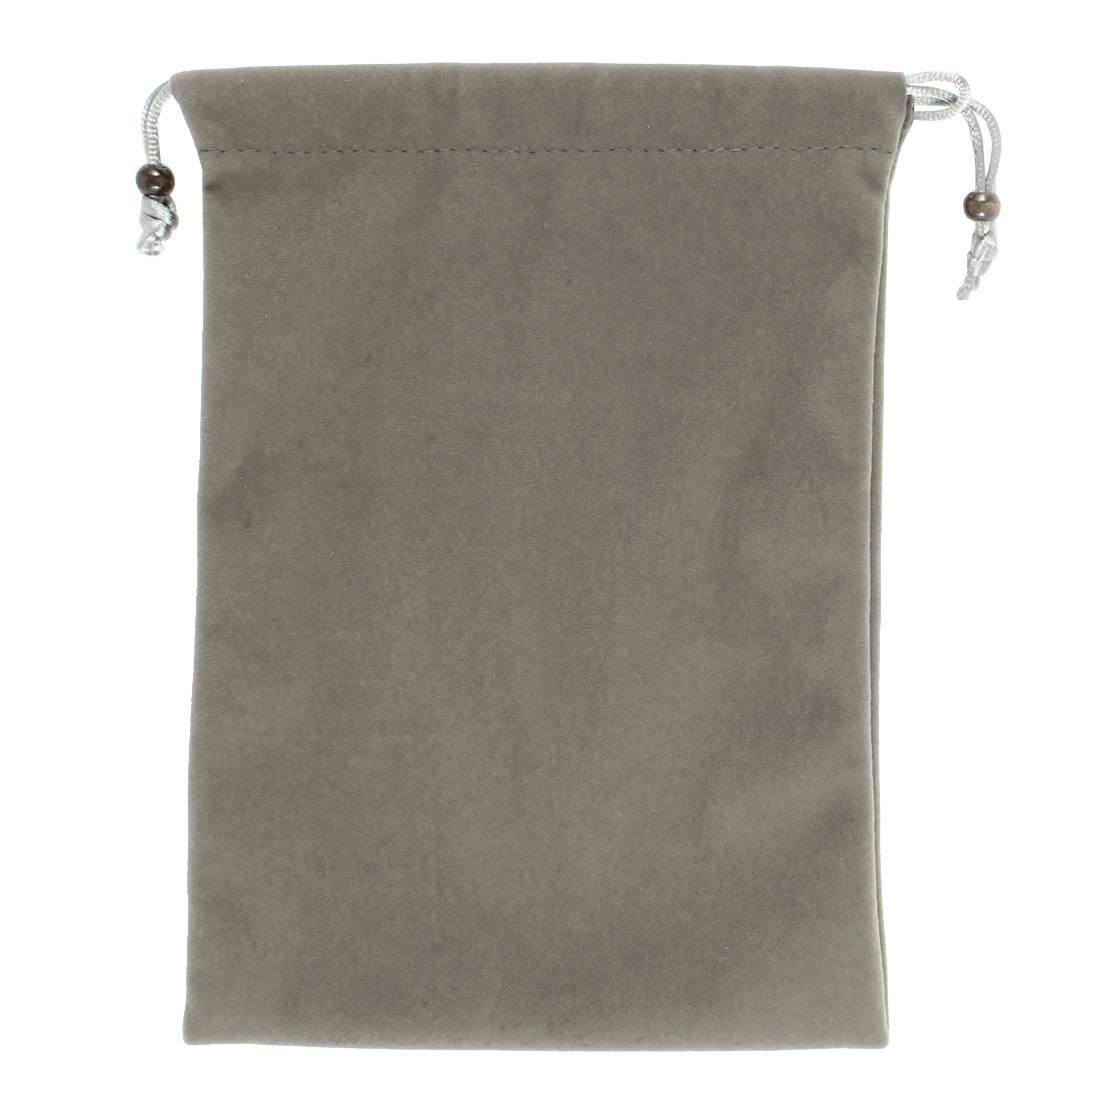 "Drawstring Velvet Sleeve Bag Case Gray for 7"" Android Tablet PC MID Kindle Fire"